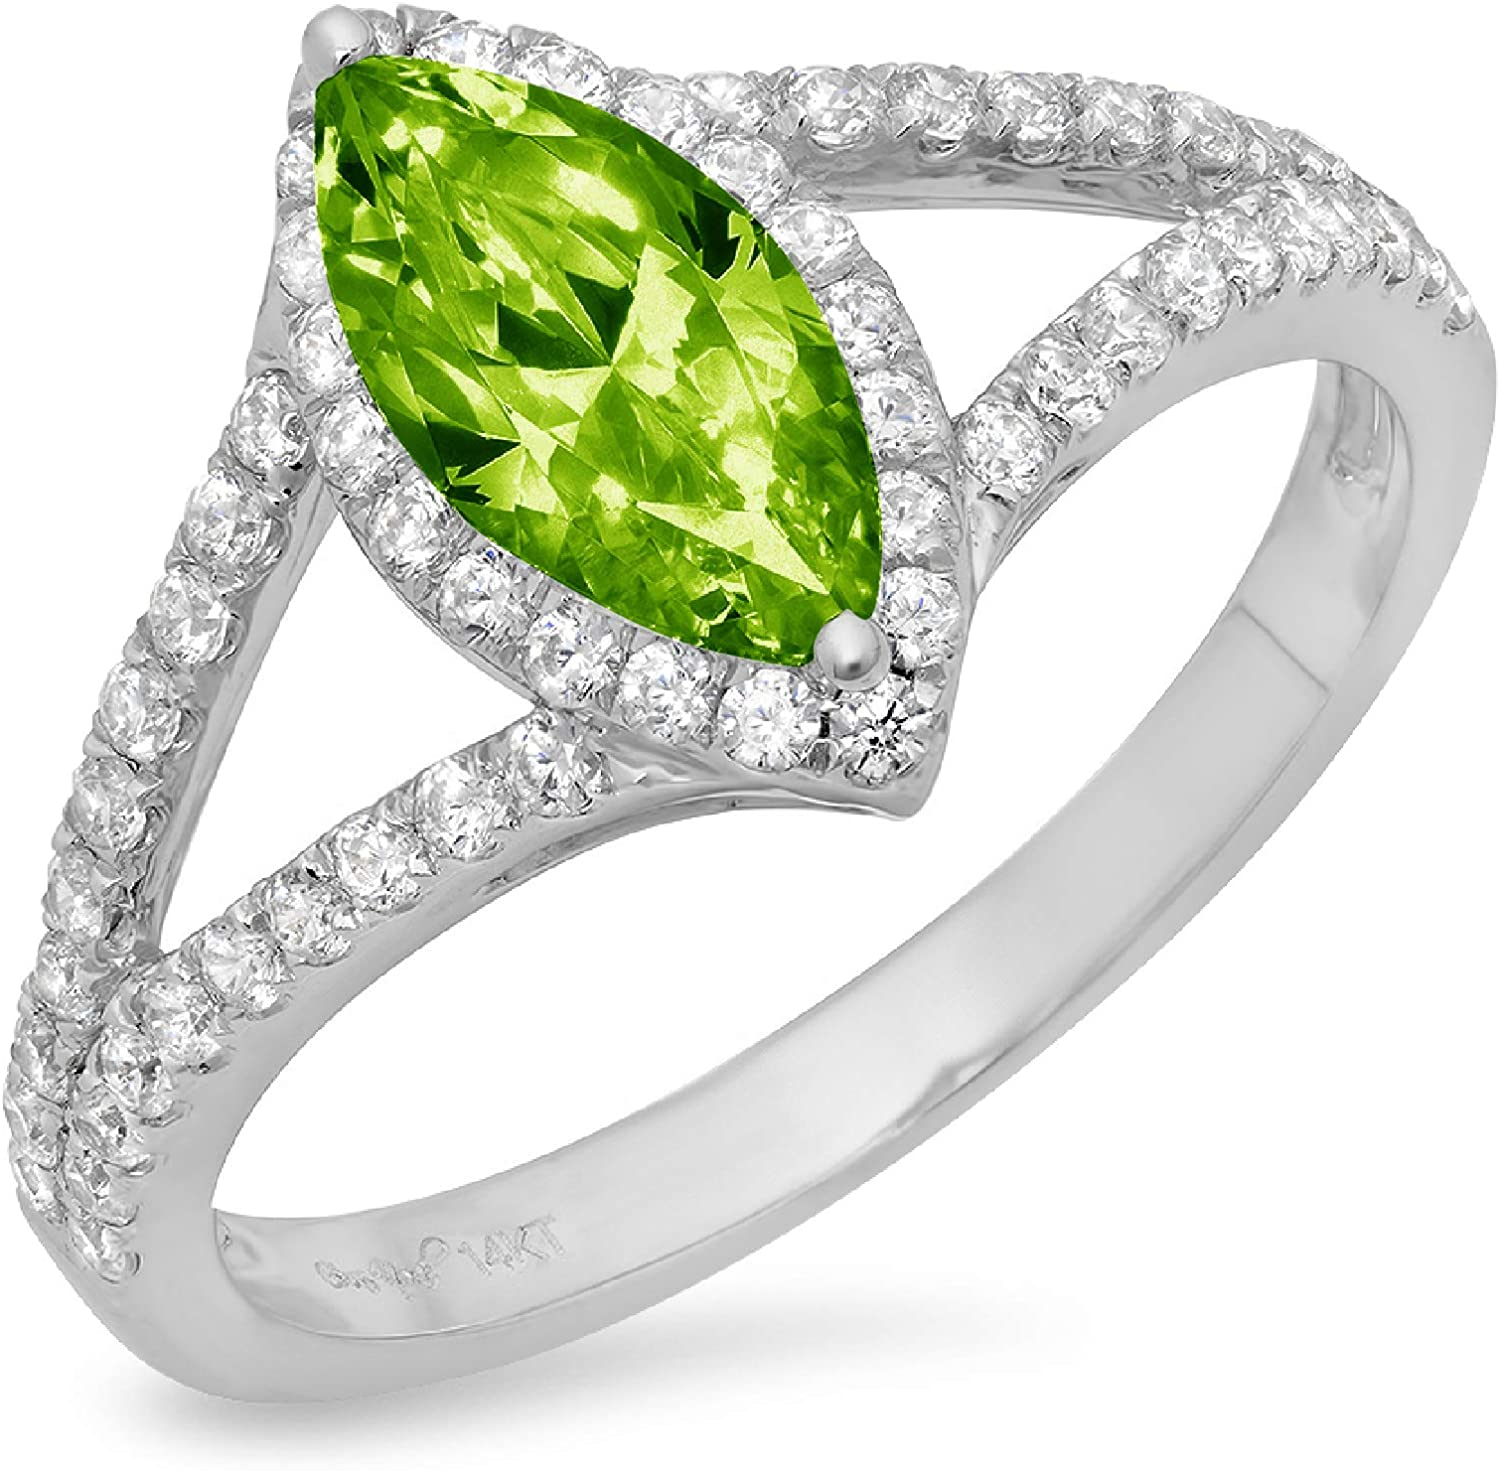 1.17ct Marquise Cut Solitaire with Accent split shank Halo Flawless Genuine Natural Pure Green Peridot Gemstone VVS1 Designer Modern Statement Ring Solid 14k White Gold